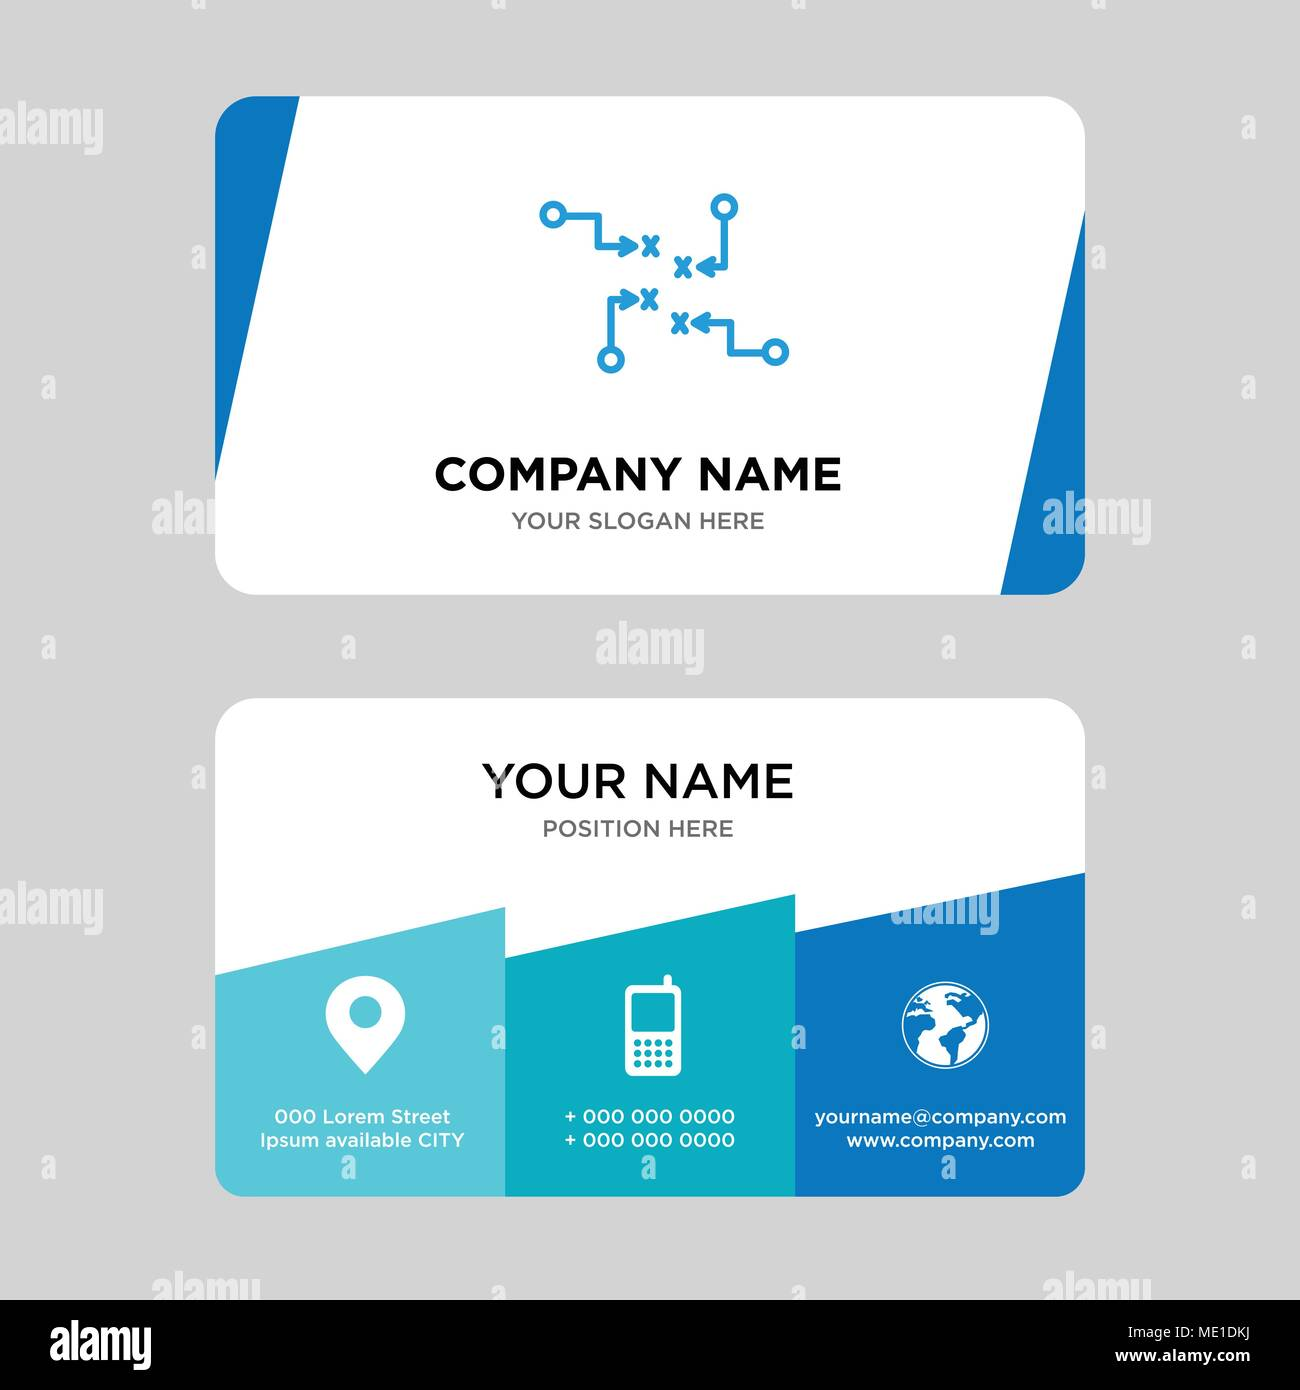 Strategy Sketch Business Card Design Template Visiting For Your Company Modern Creative And Clean Identity Vector Illustration